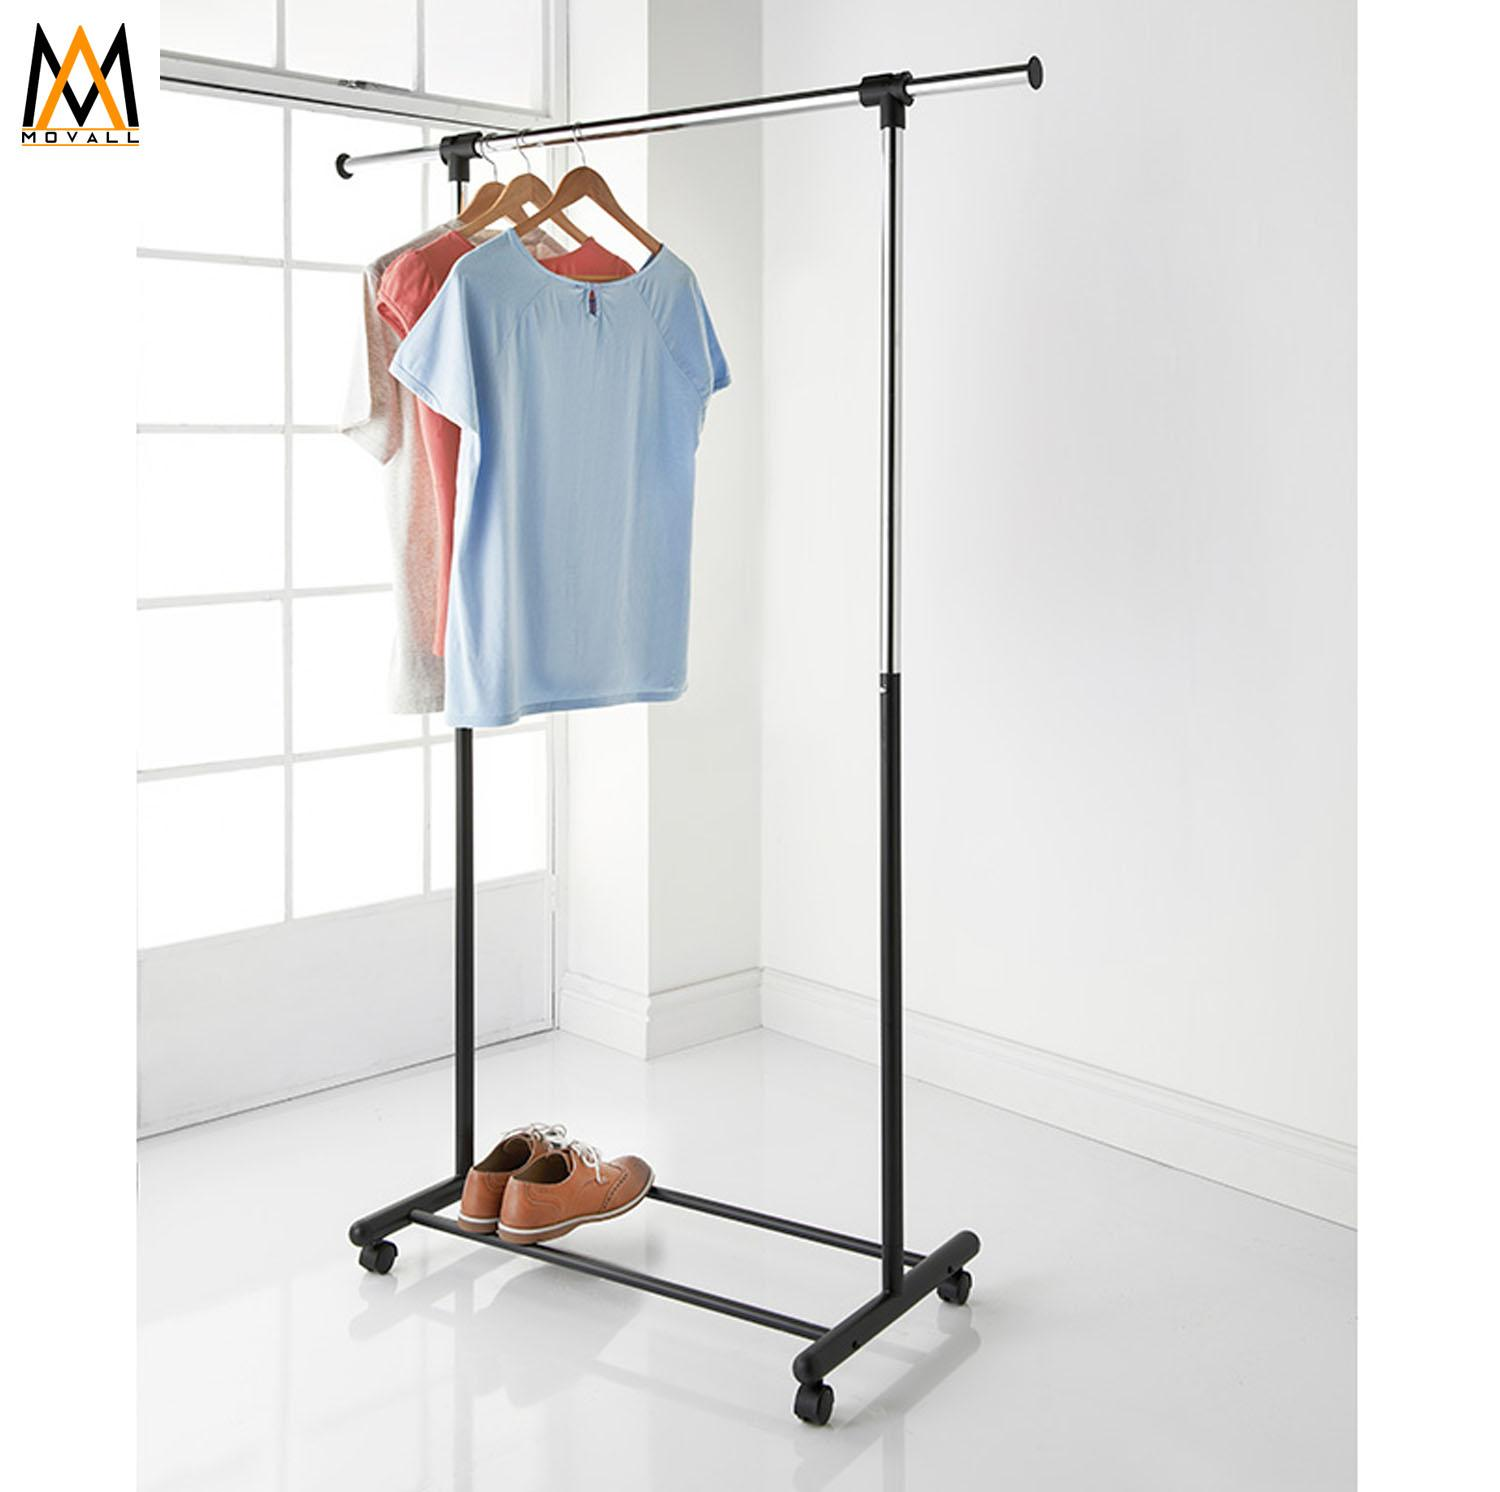 Clothes Rack Adjustable Telescopic Single Pole